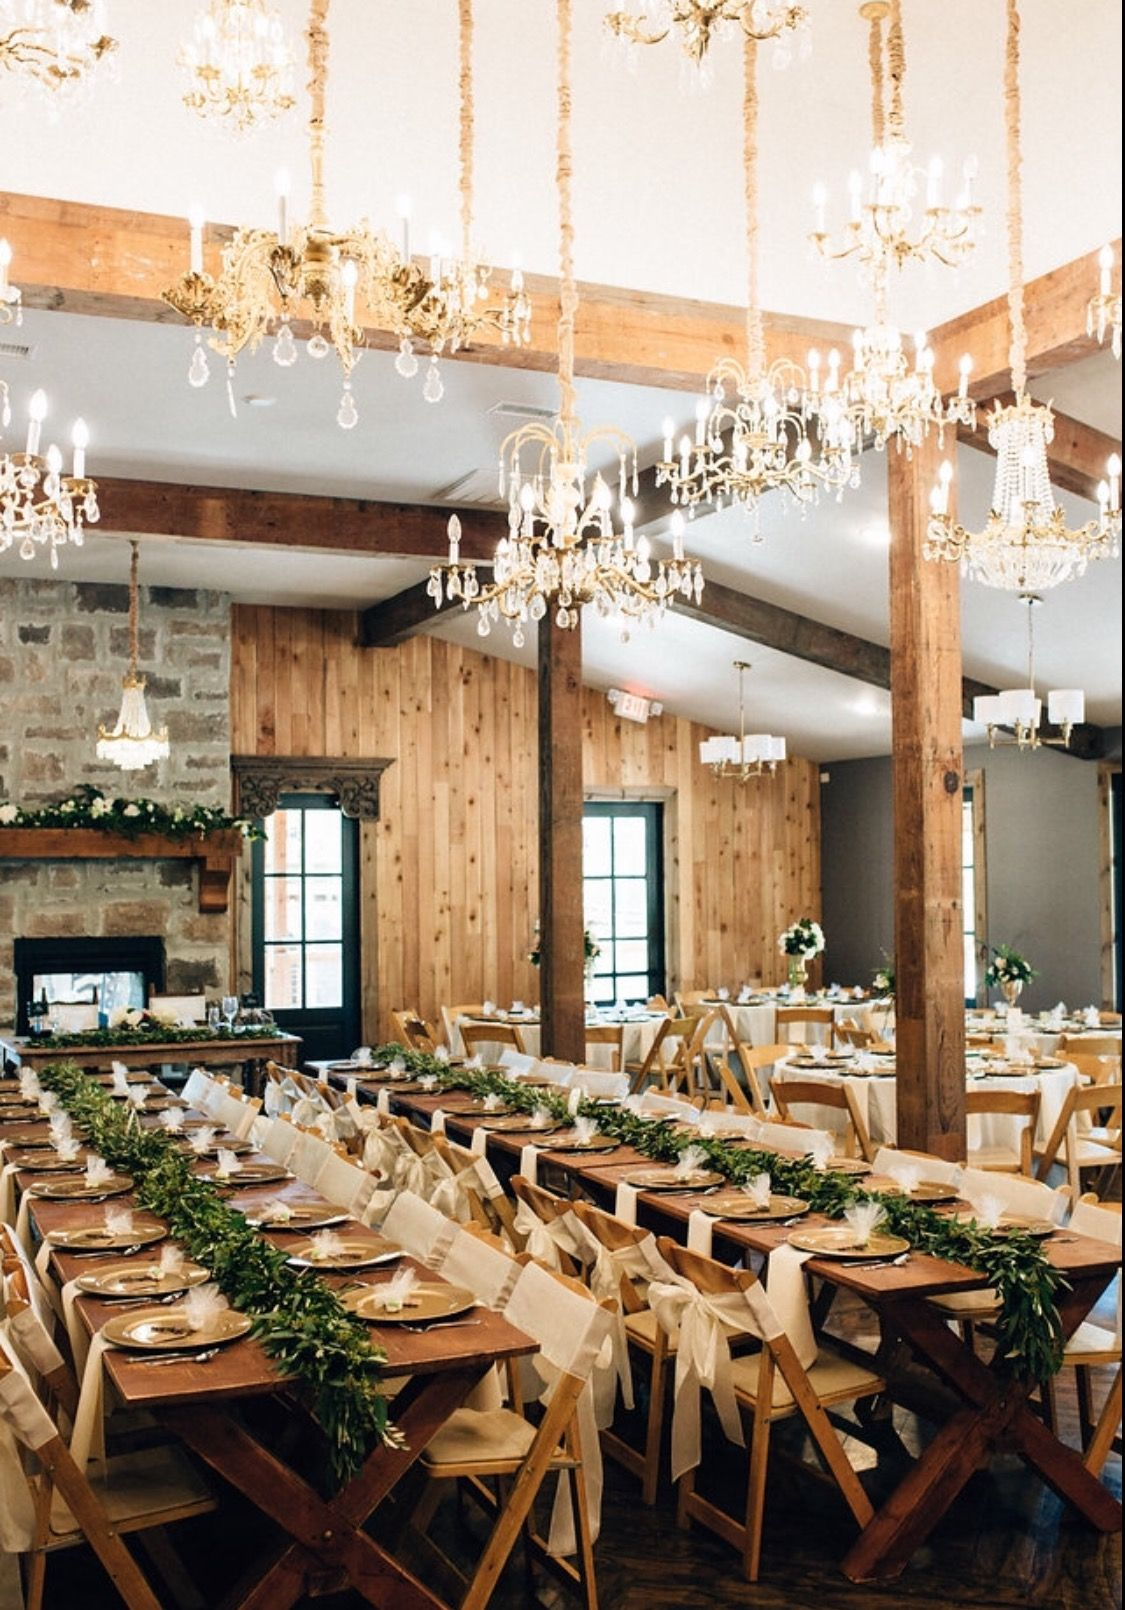 Rustic Glam Wedding The Grand Hall Montgomery, Texas ...